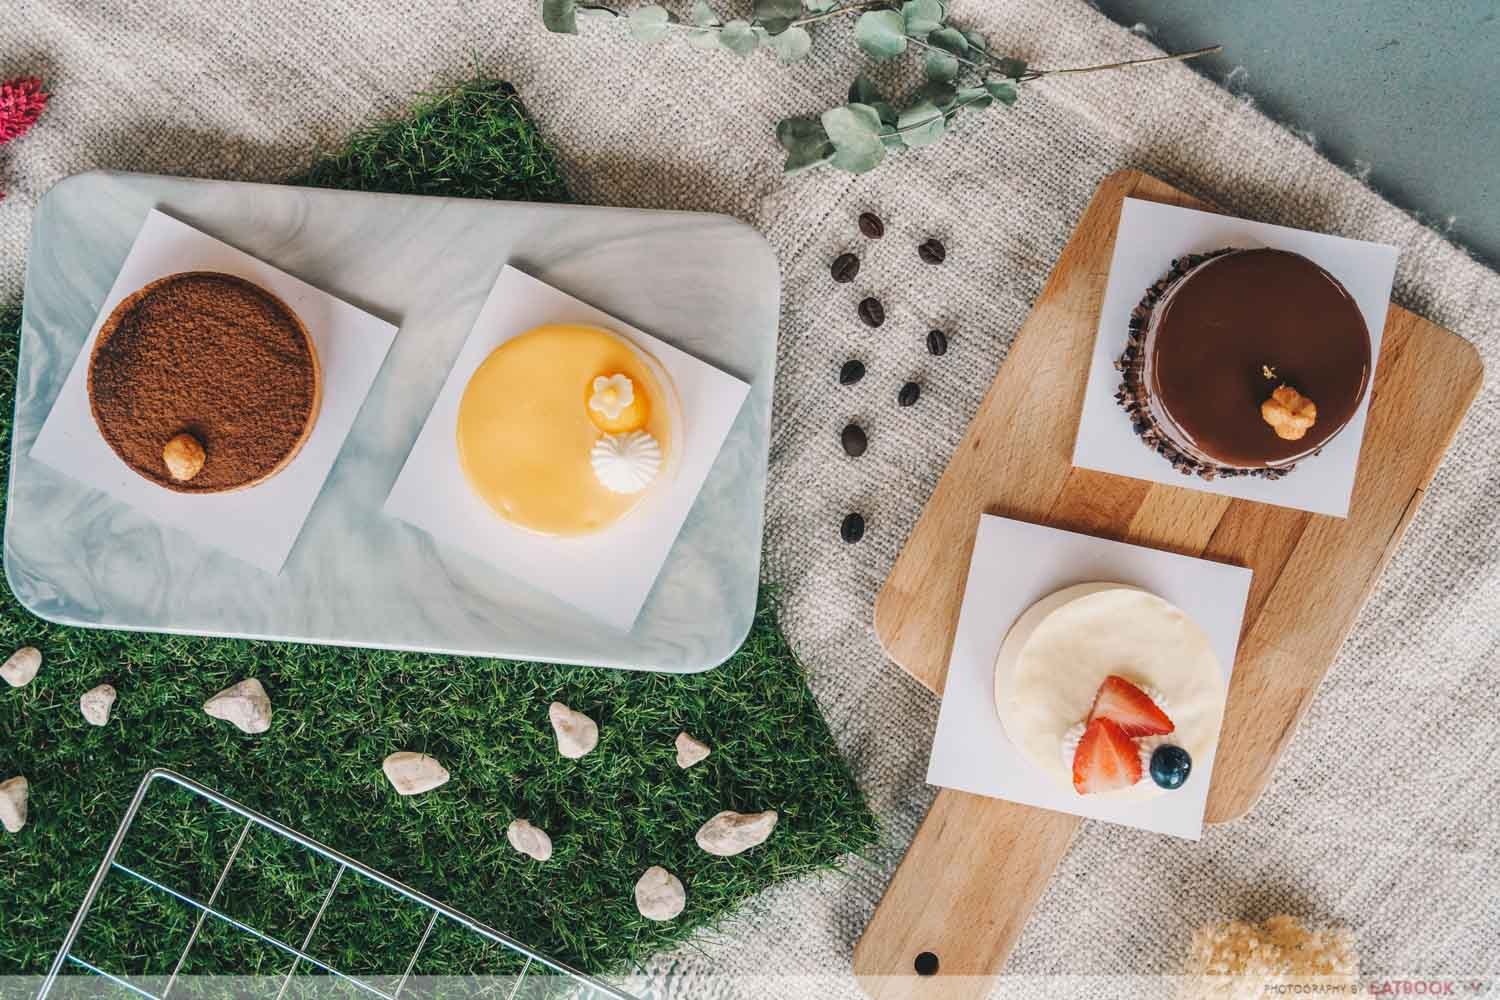 Patisserie Cle - Flat lay